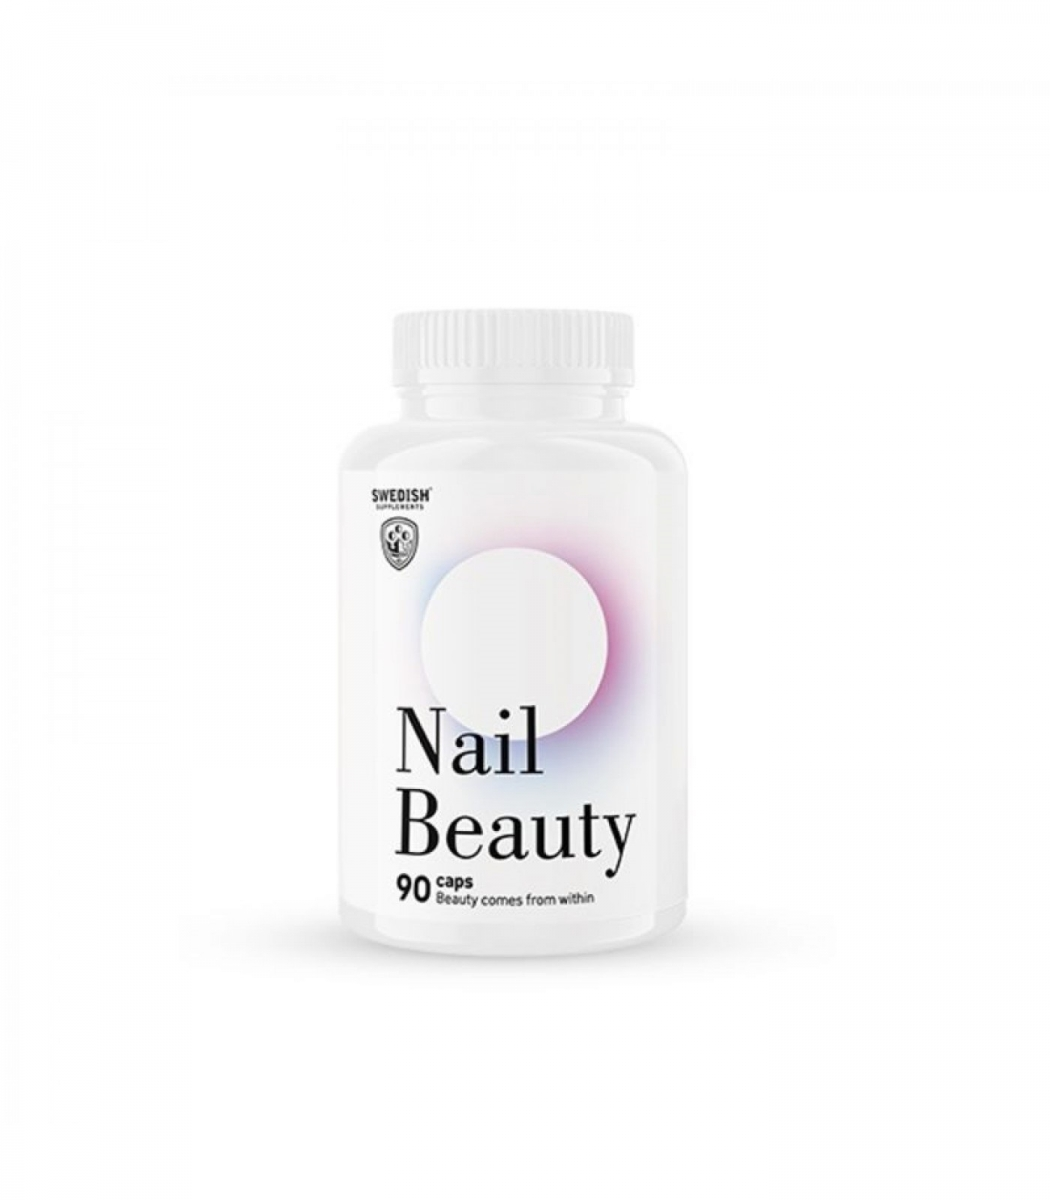 SWEDISH Supplements Nail Beauty 90caps